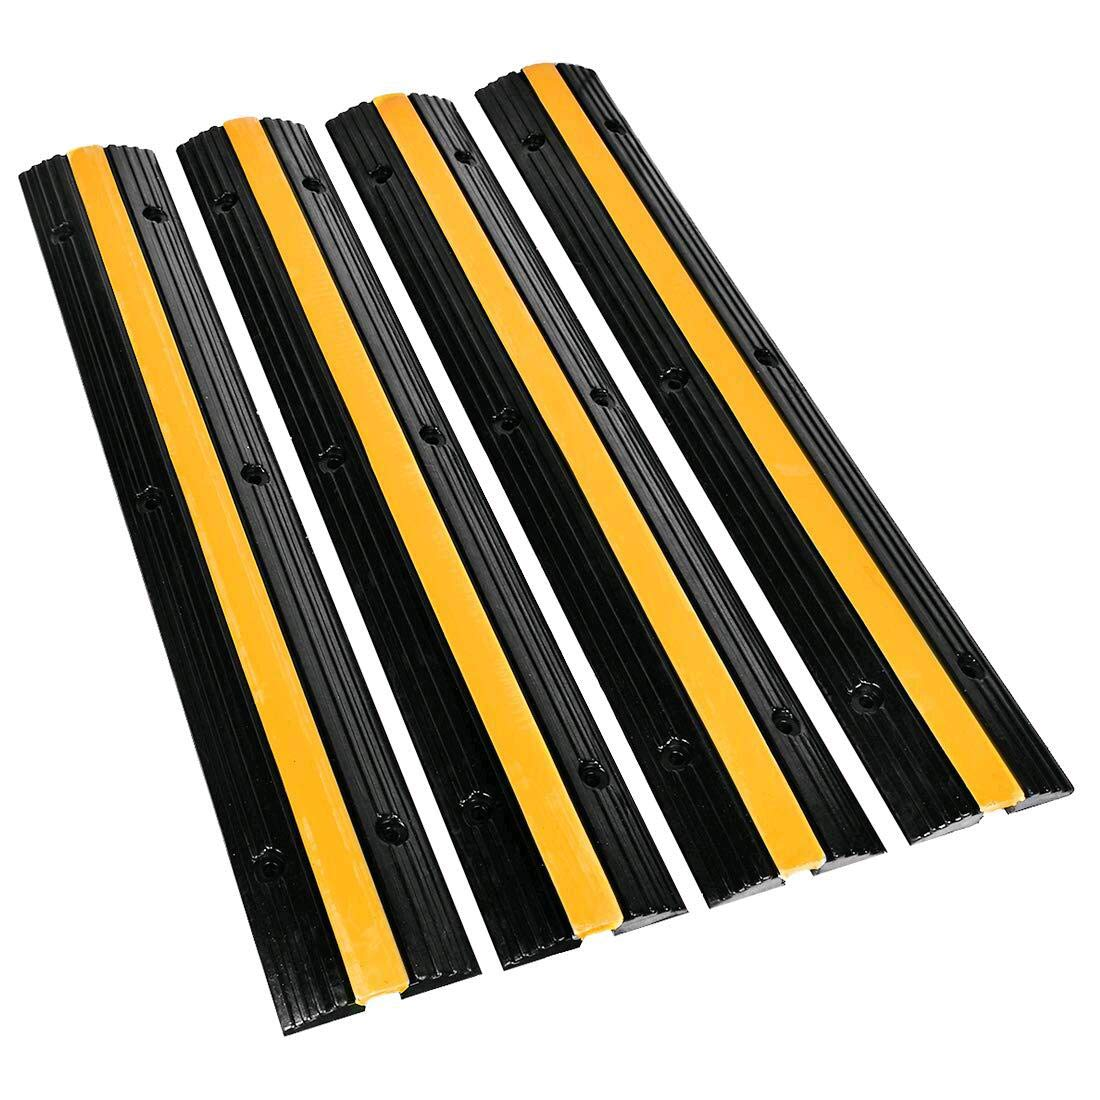 B BAIJIAWEI Cable Ramp - 1 Channel Cable Protector - 4 Pack Heavy Duty 18000LBS Capacity Rubber Speed Bumps Ramp Protective Cover for Driveway Hose Cable